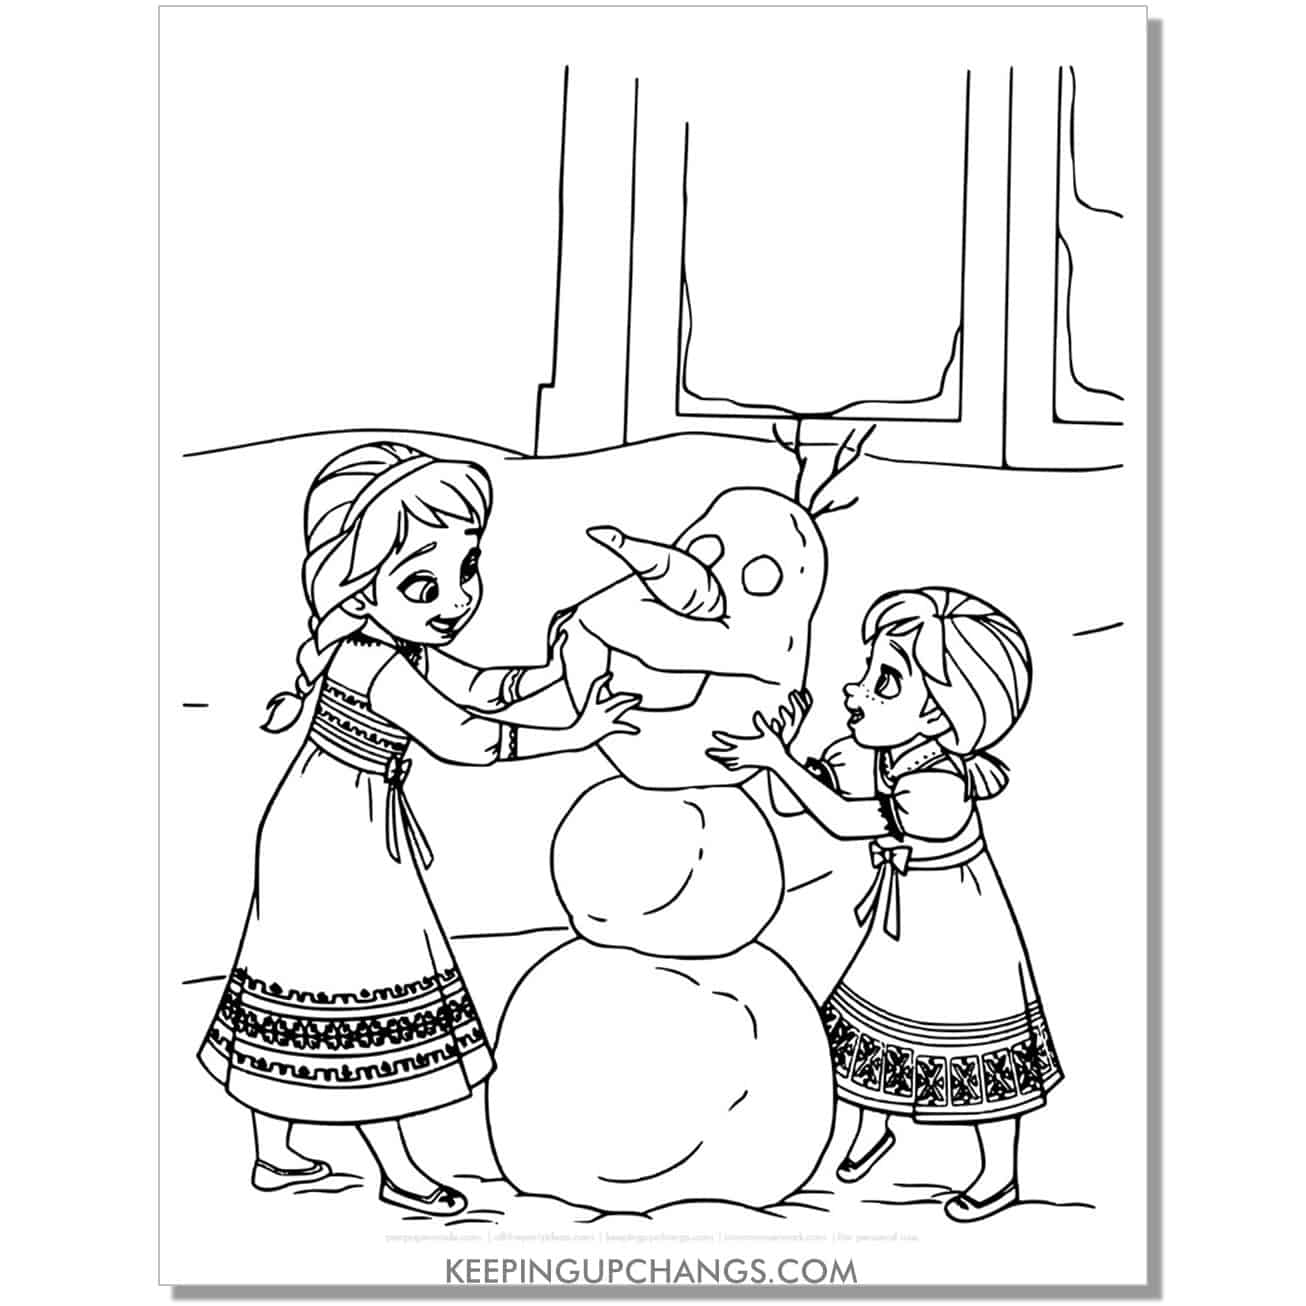 free frozen cute elsa anna baby kid coloring page.